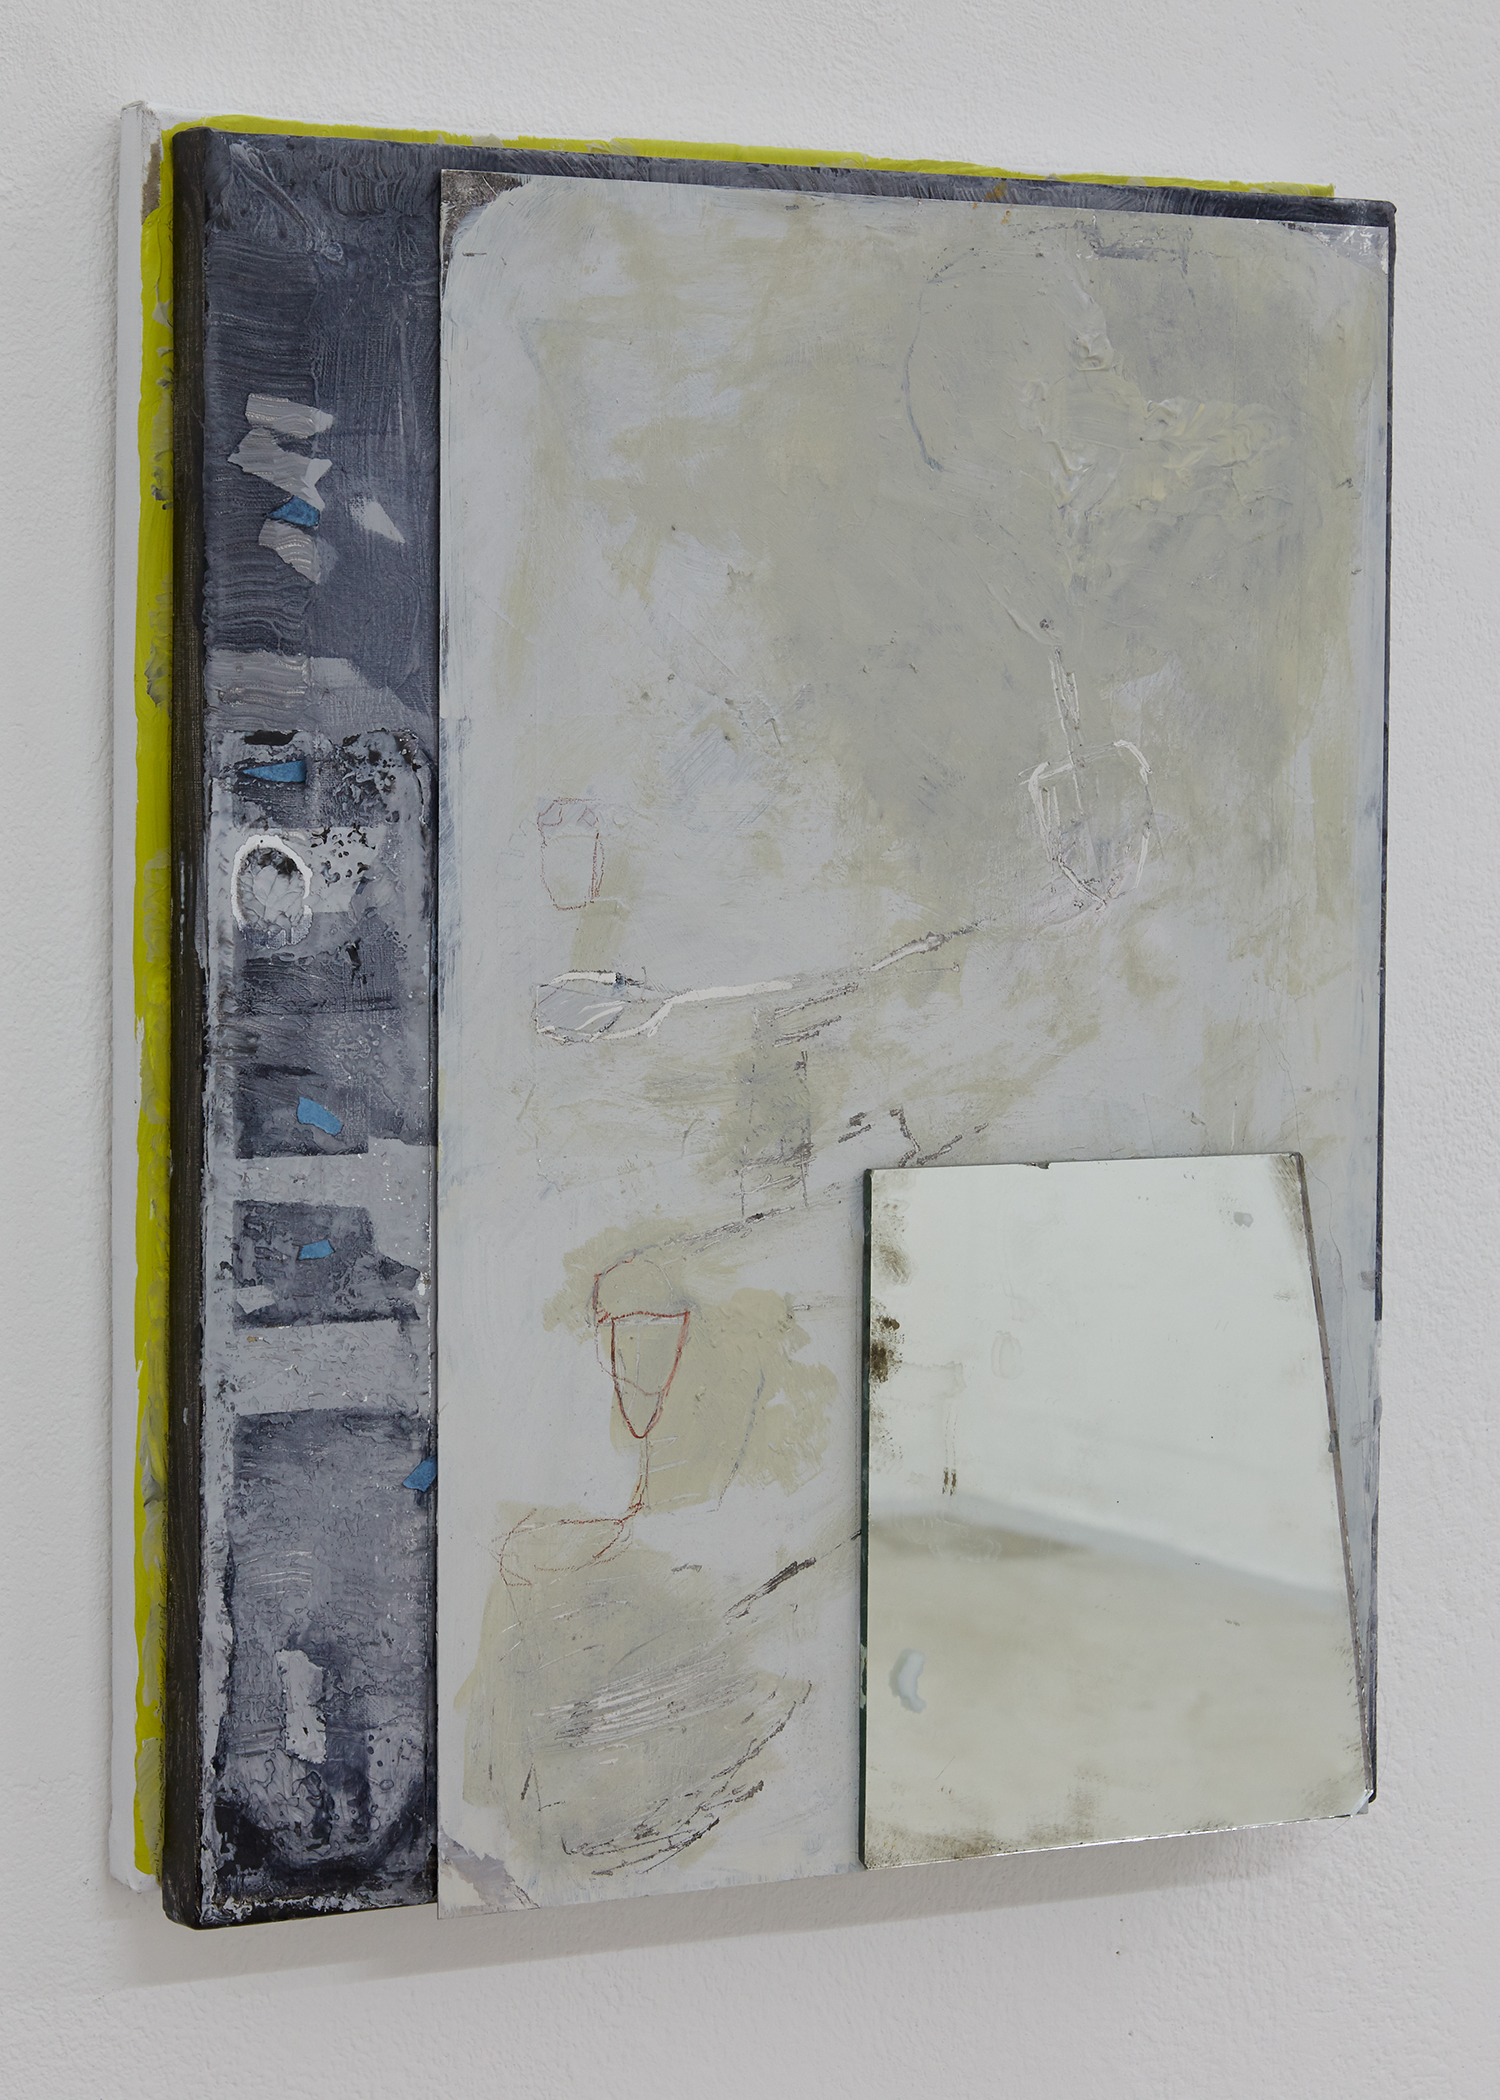 Block of Memory, Mirror over aluminum over 2 canvases, 51 x 41 x 5cm